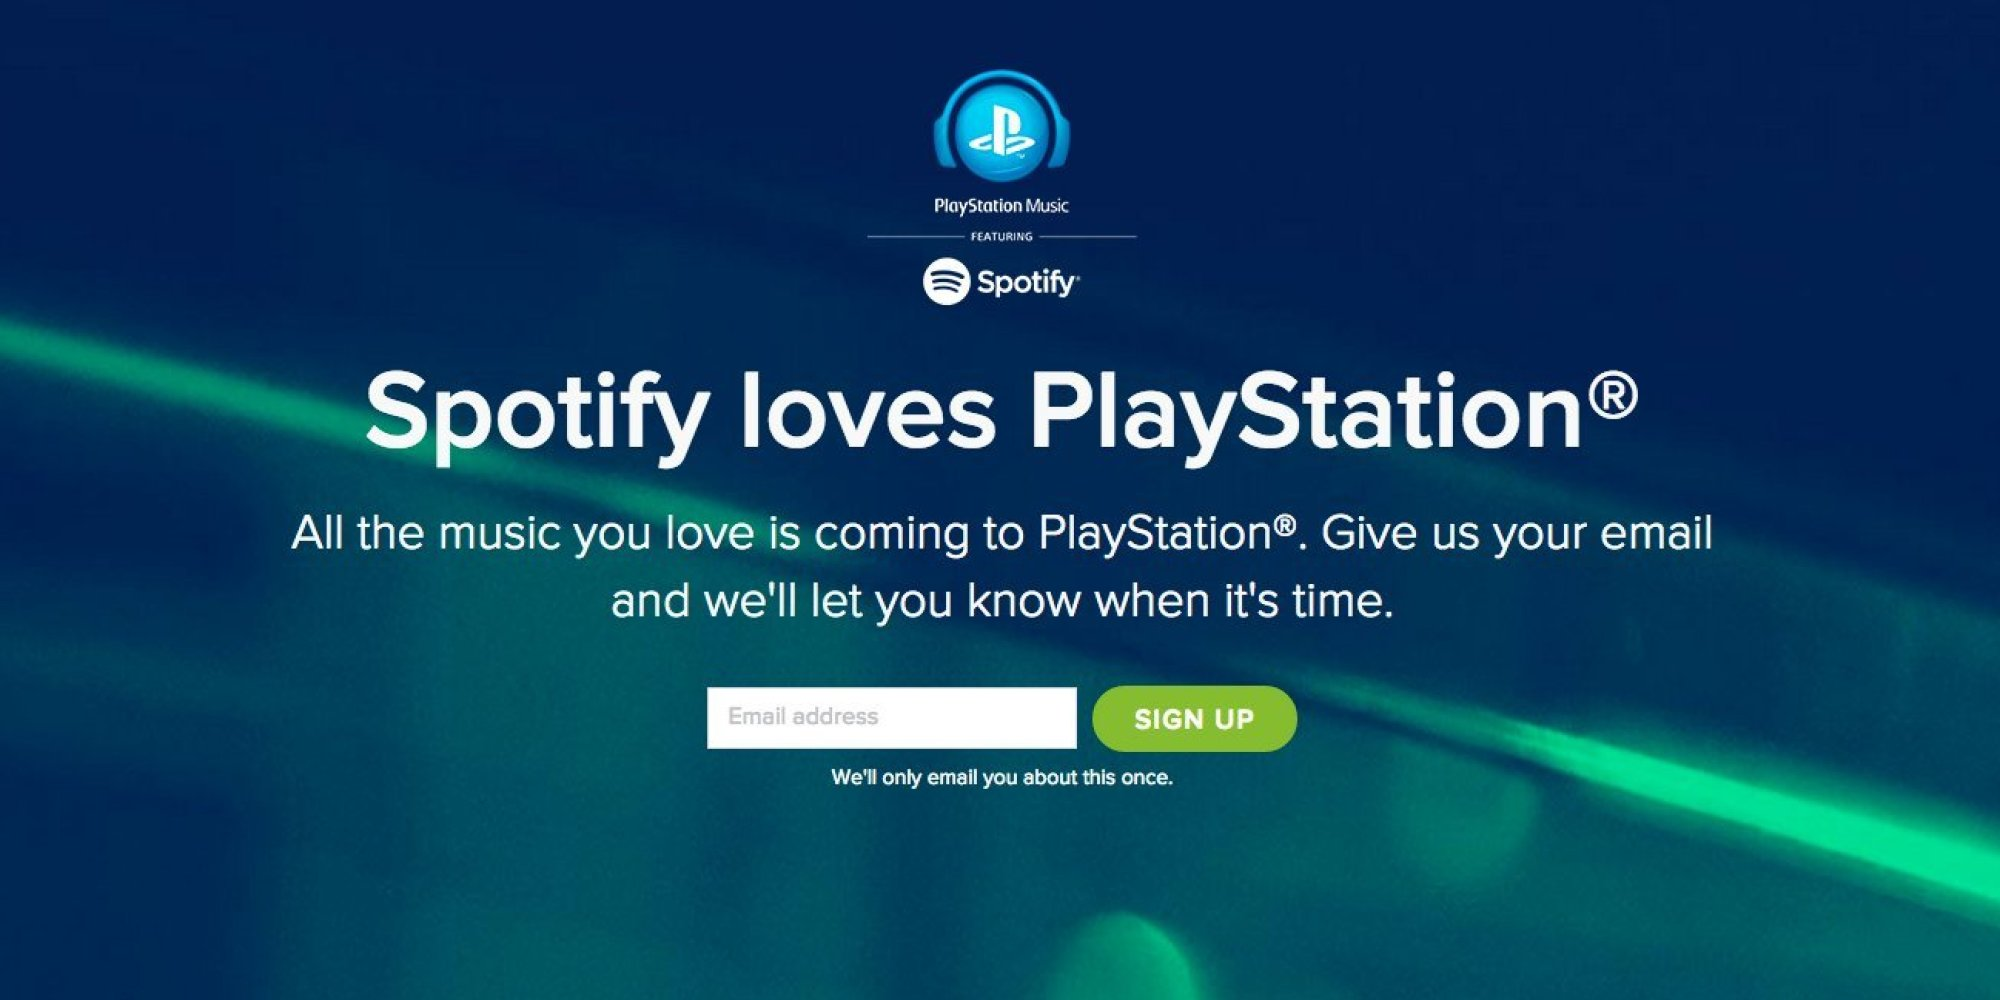 how to get playstation music on ps4